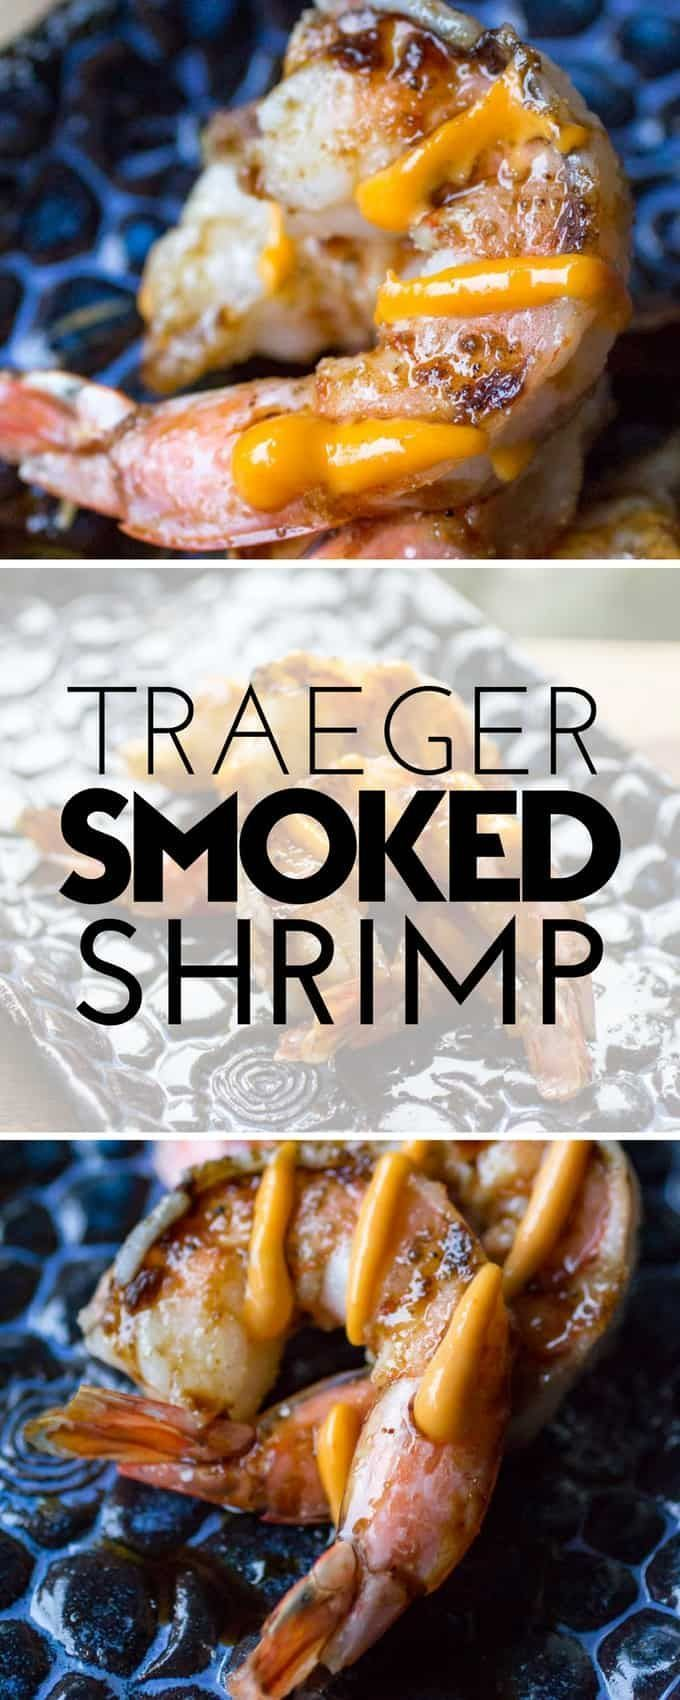 Traeger Smoked Shrimp